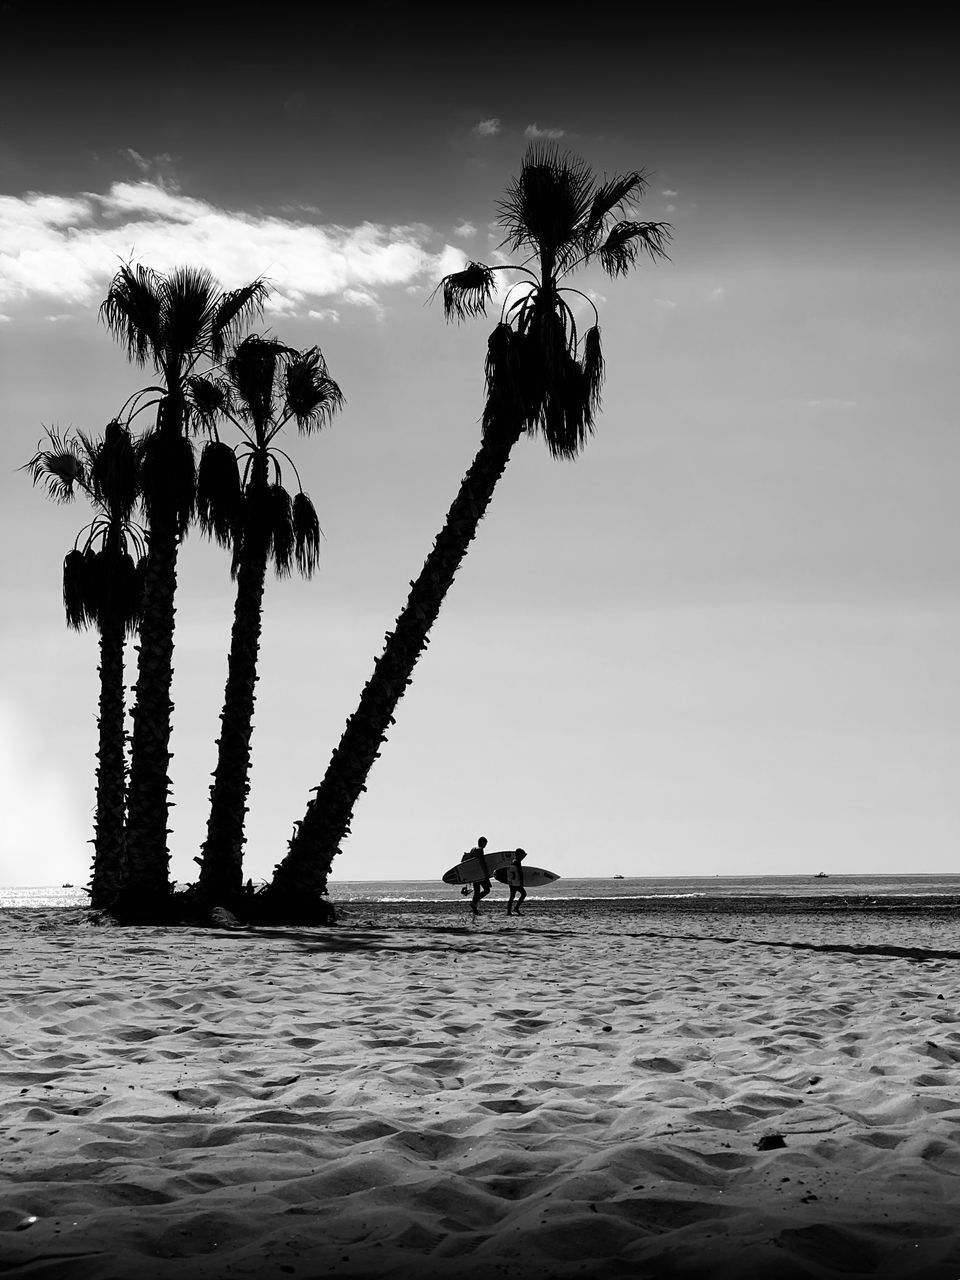 SILHOUETTE PALM TREES ON SHORE AGAINST SKY